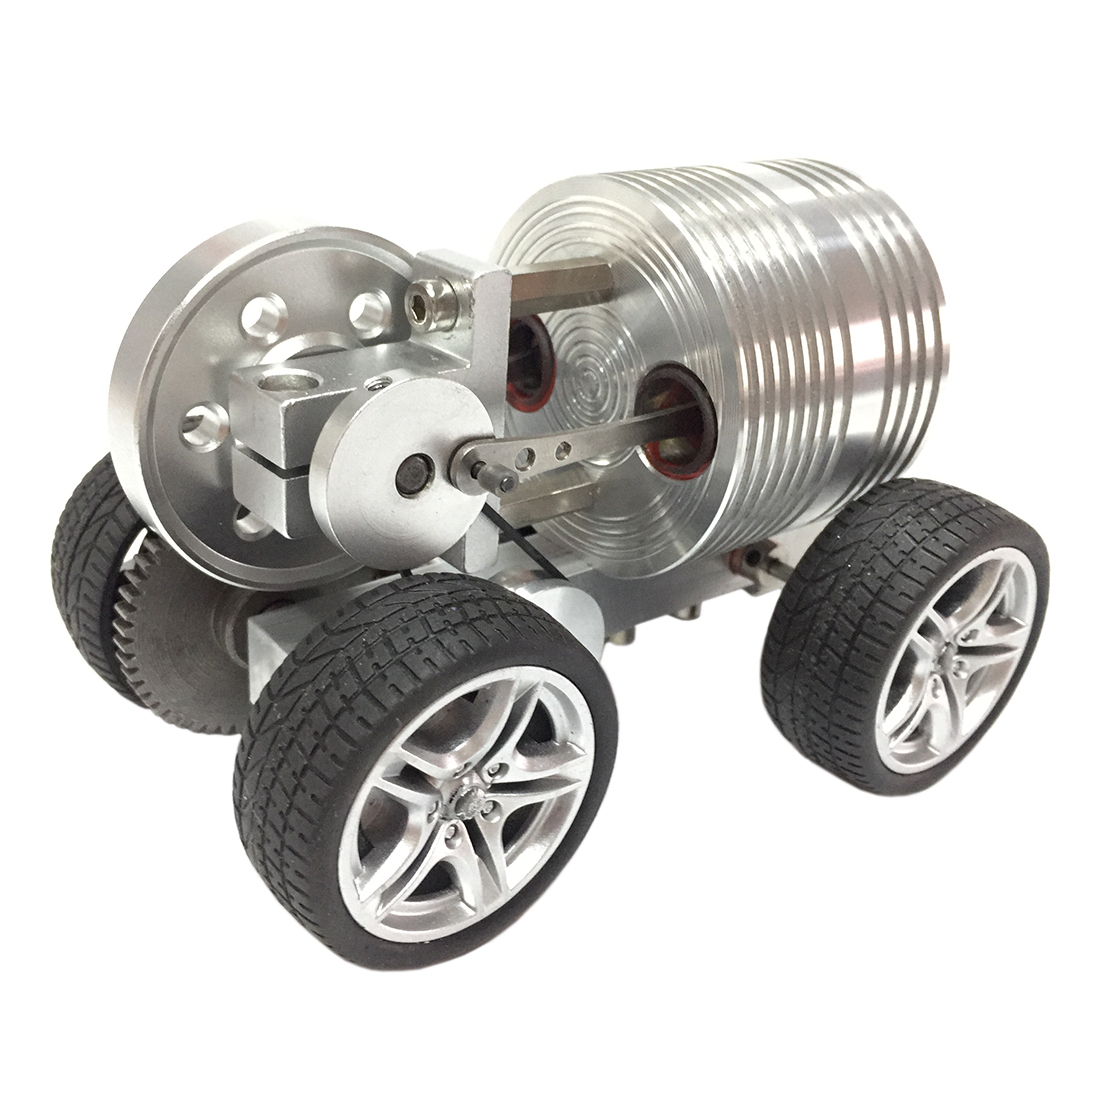 2019 New Design Launchable Advanced Version Rubber Wheel Car Stirling Engine Model Toy for Kid Birthday